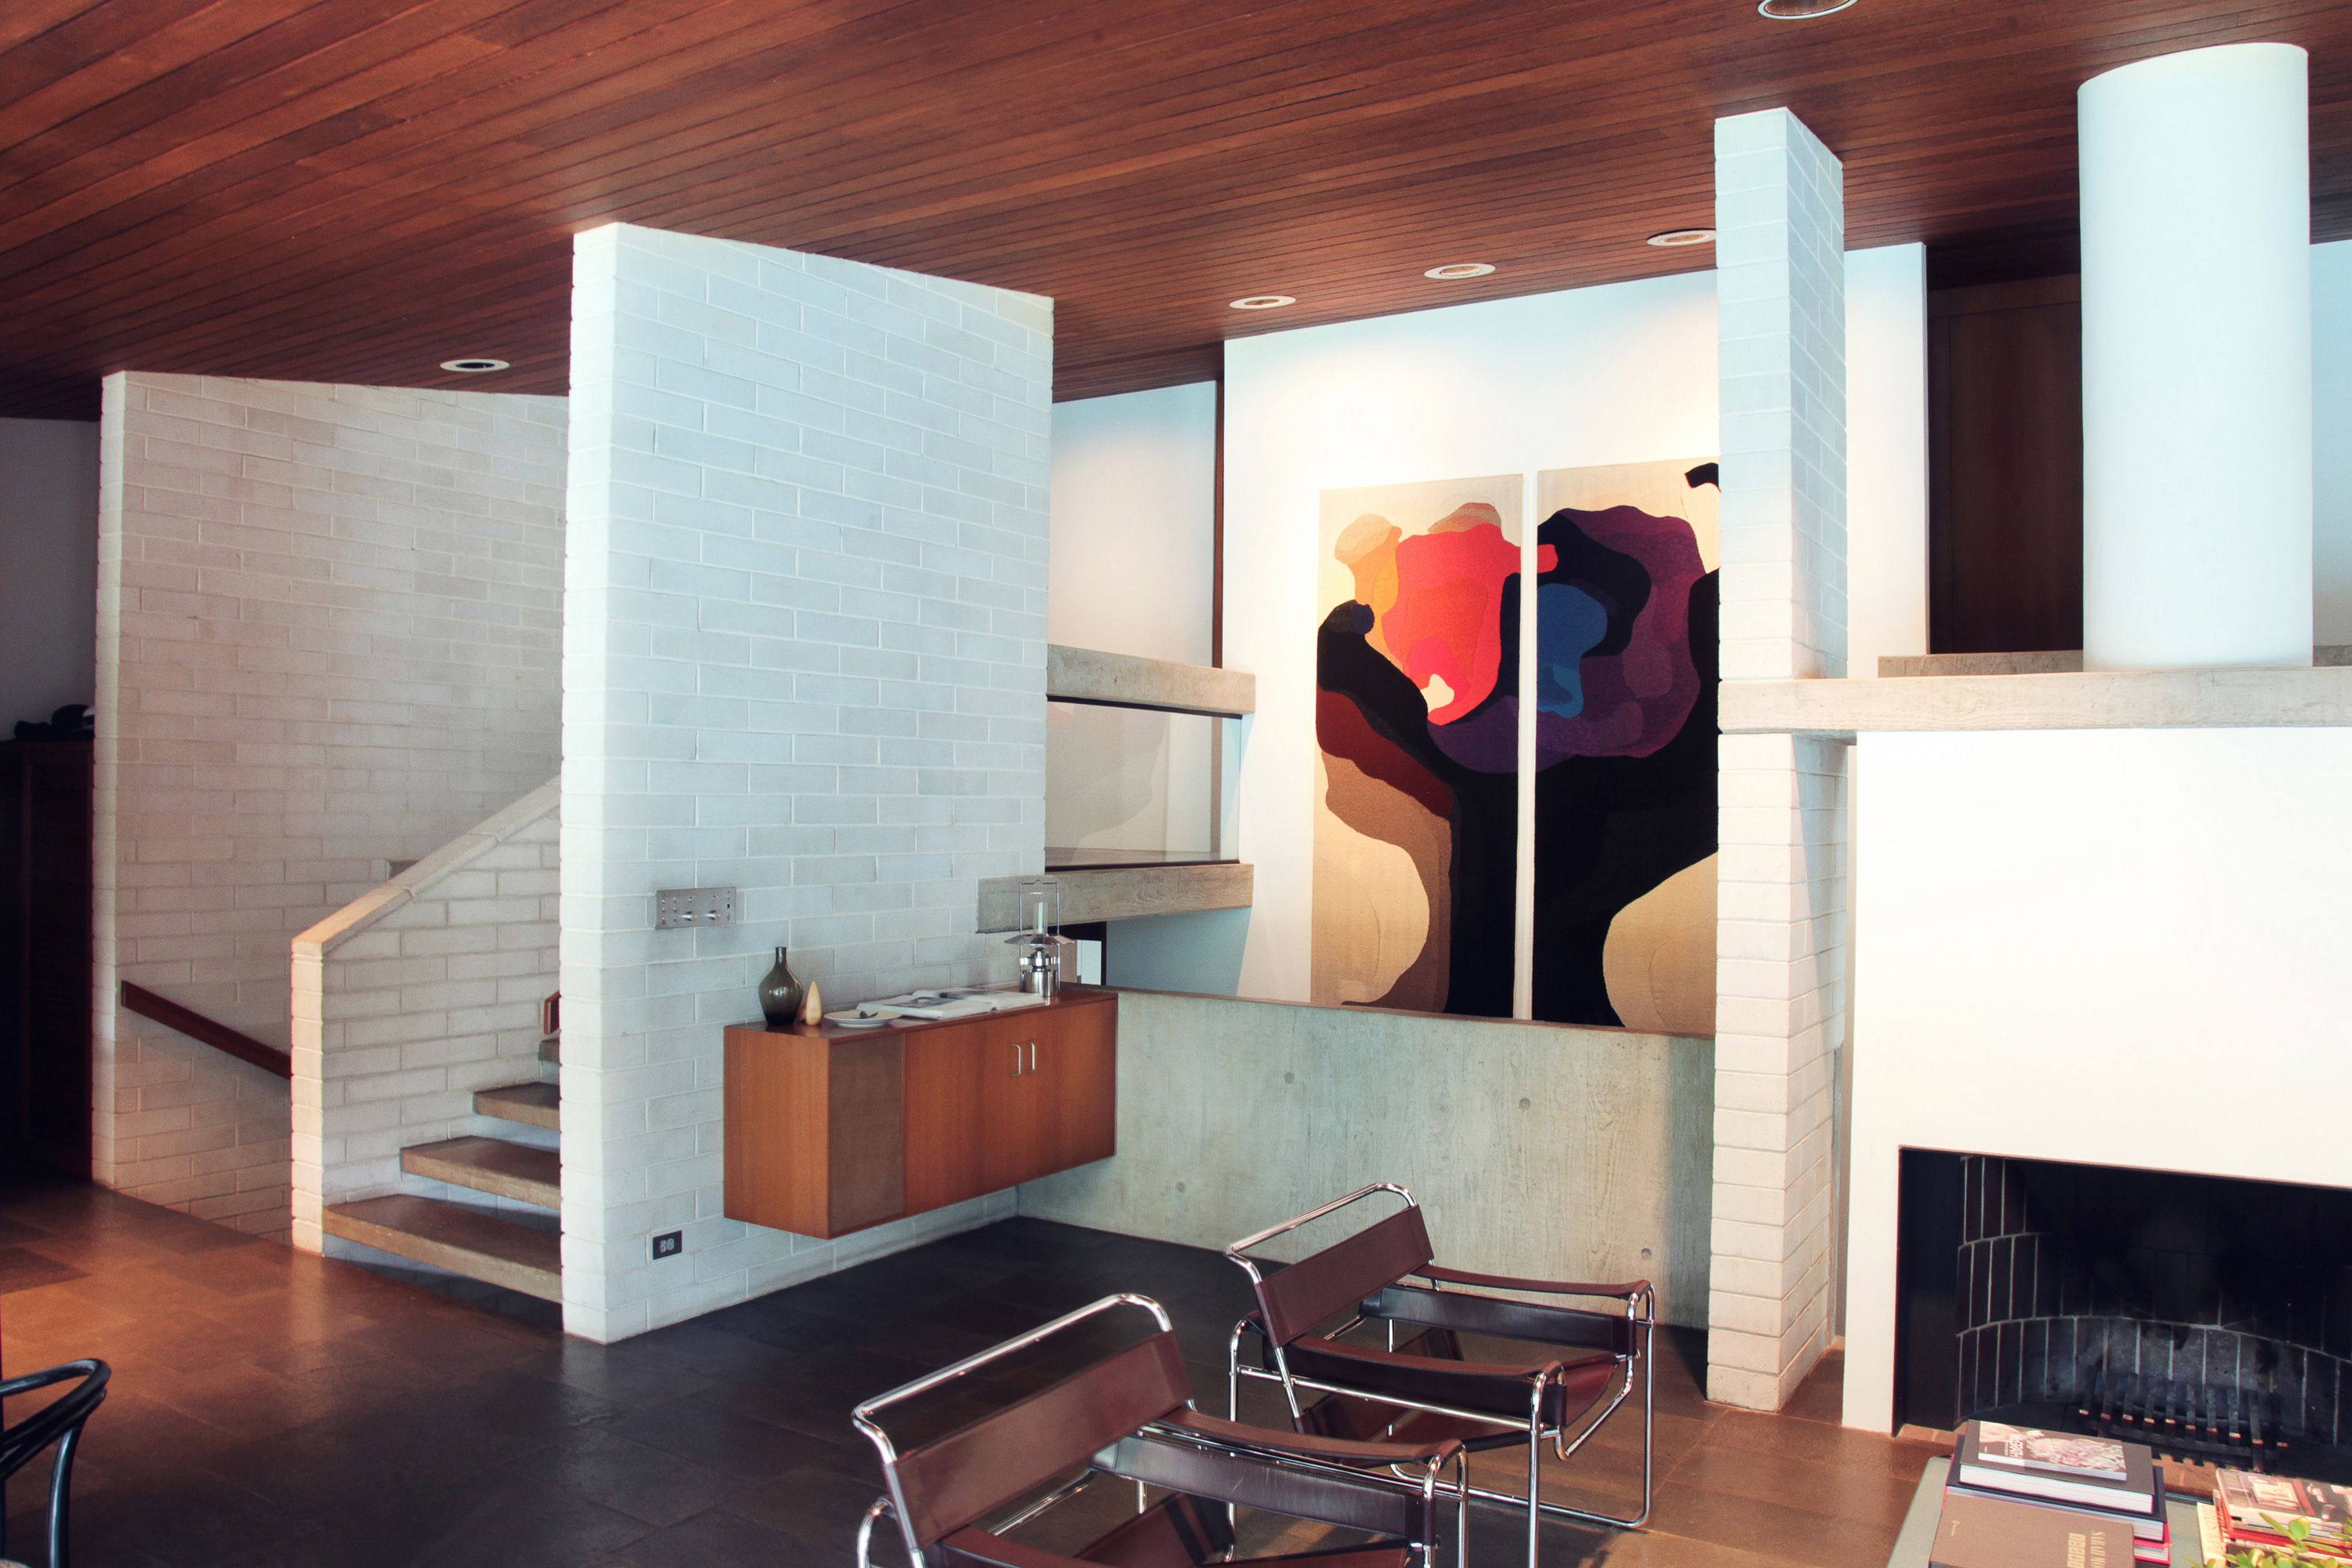 Modernist interior of the Gissing House Wahroonga